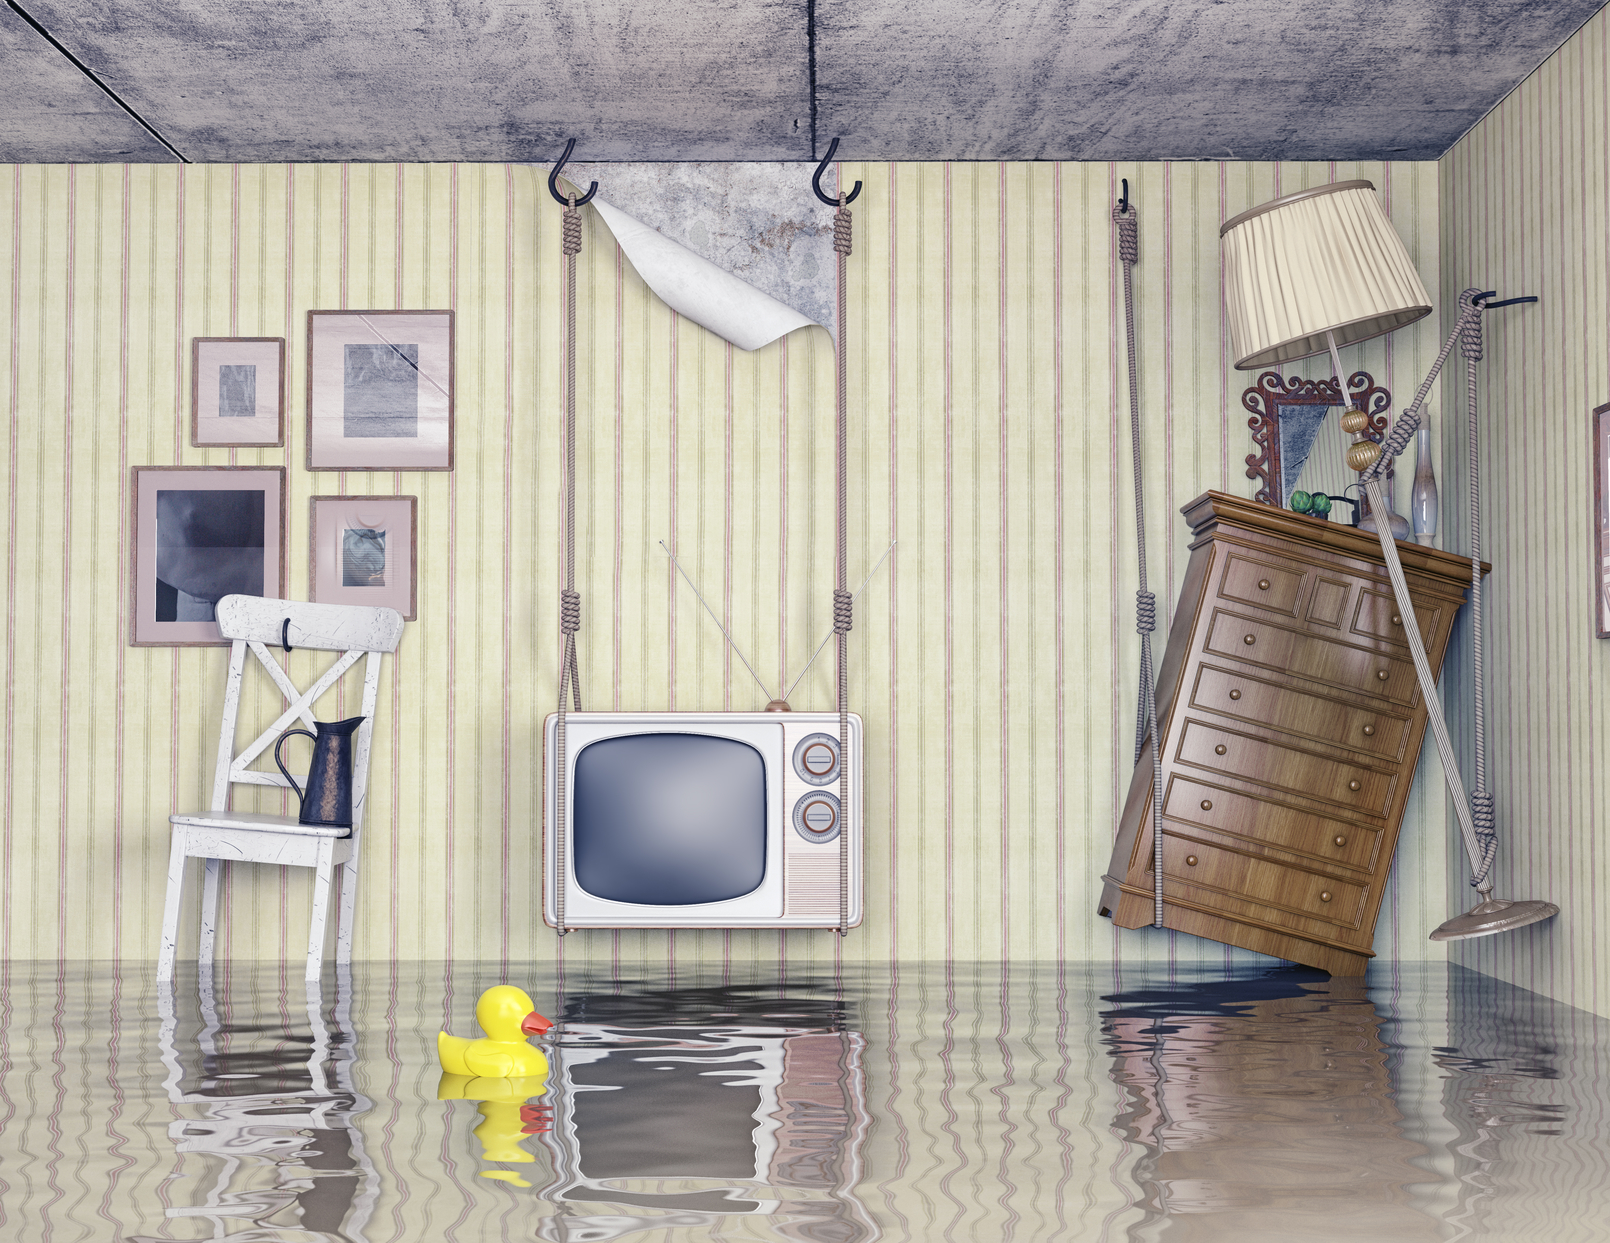 Water Damage San Diego County, Water Damage Cleanup San Diego County